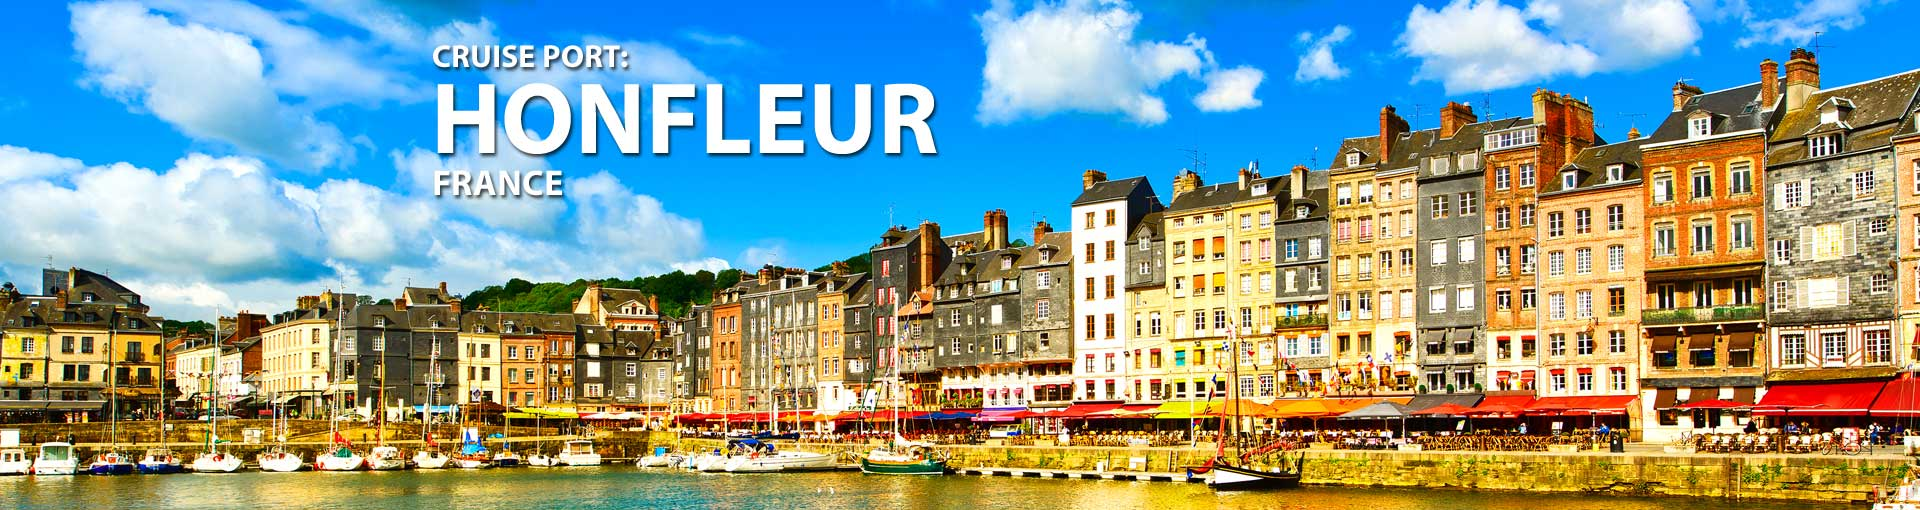 Cruises to Honfleur, France